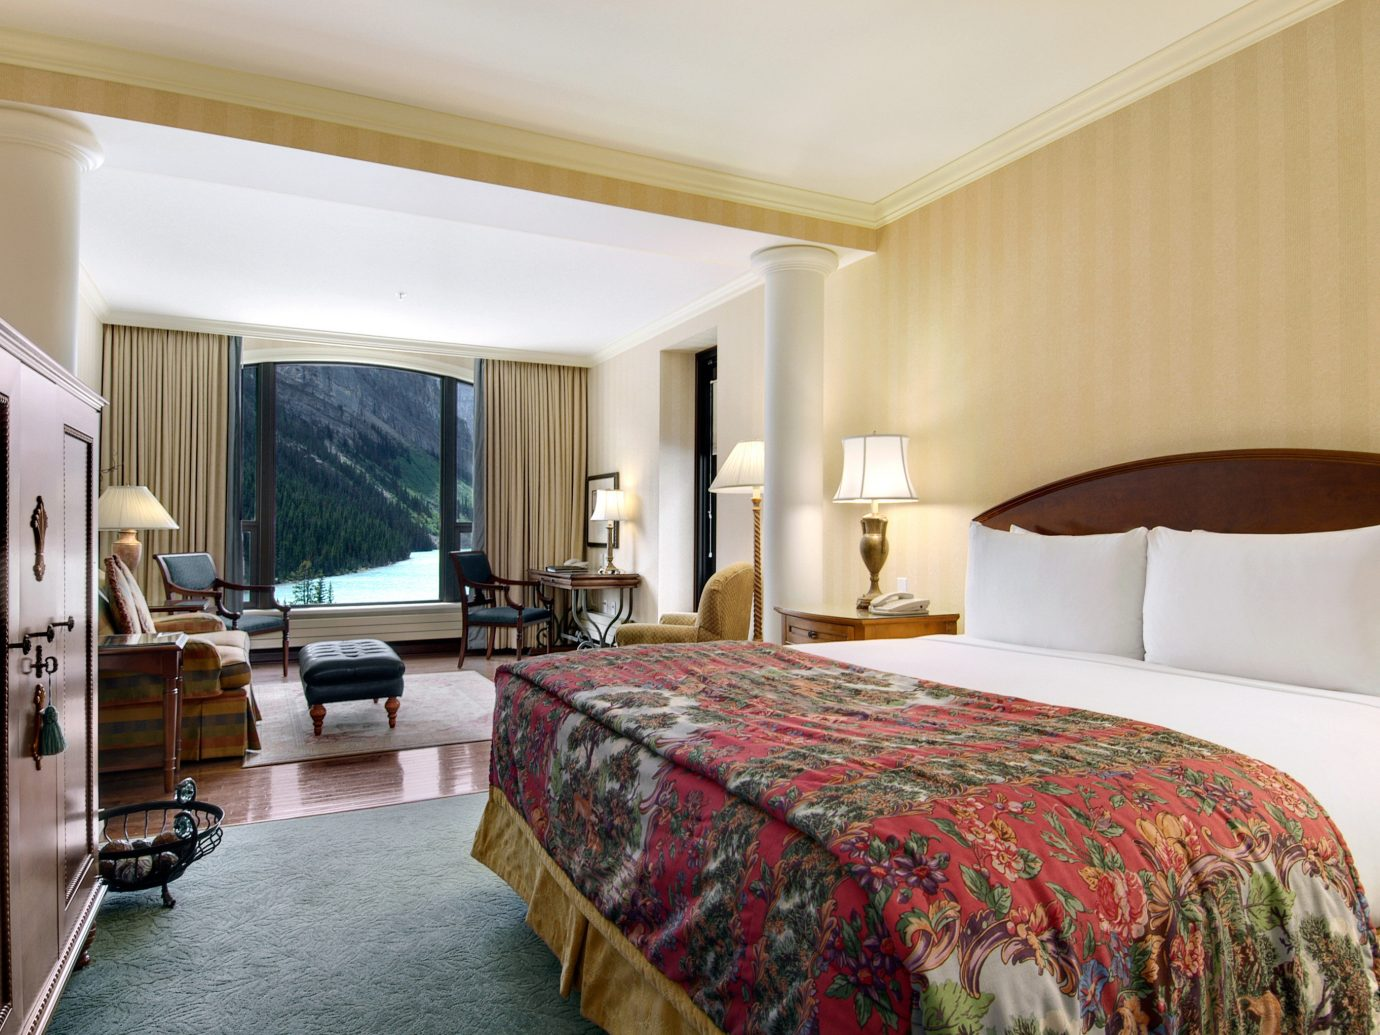 Alberta Boutique Hotels Canada Hotels indoor bed wall sofa room Bedroom floor ceiling window hotel property Suite estate real estate interior design furniture Resort cottage Villa pillow apartment decorated containing